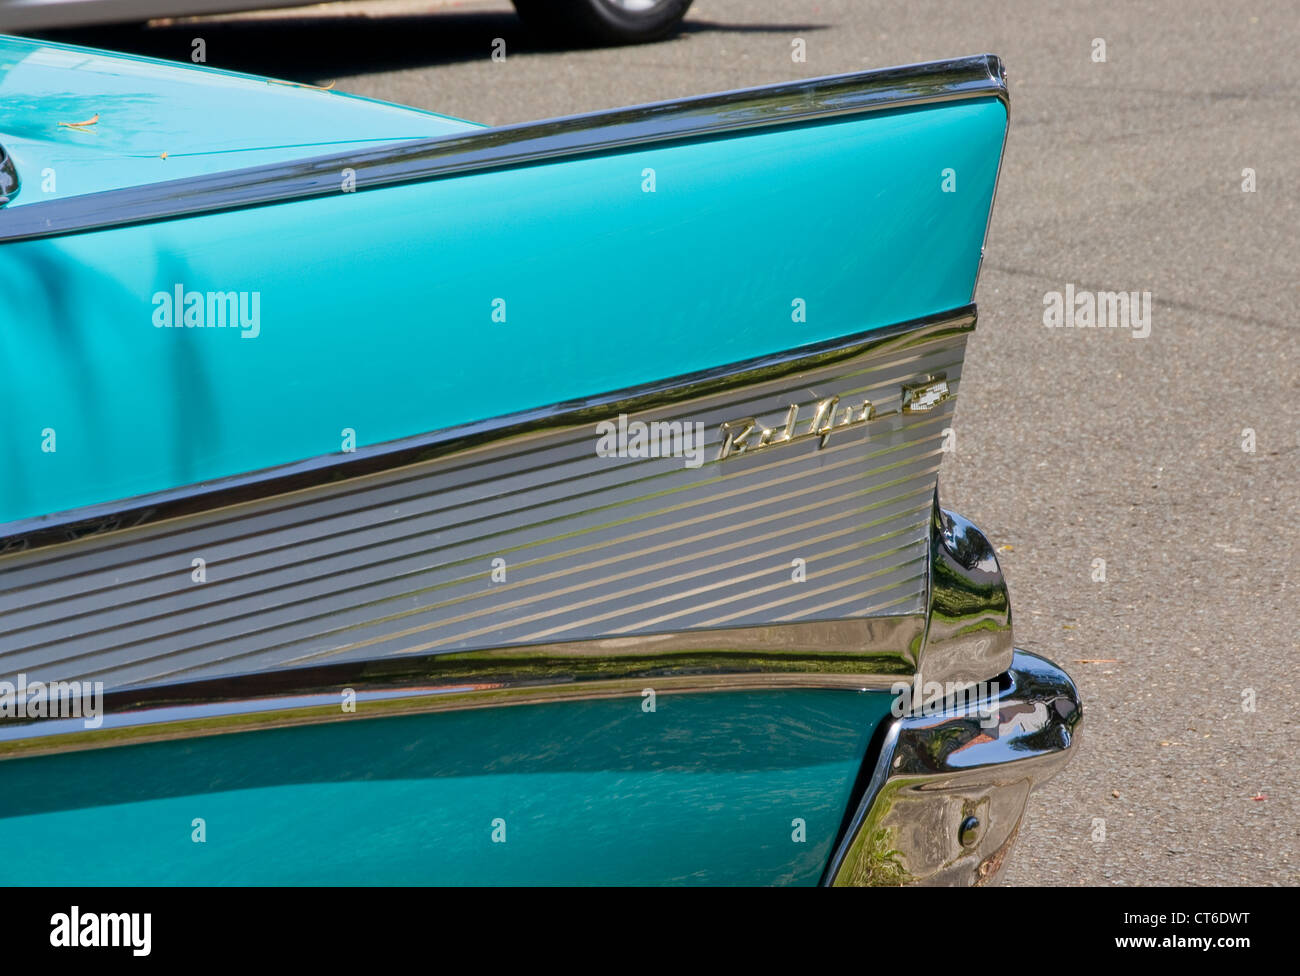 Part of a 1957 Chevrolet Bel Air. This historic vehicle has been immaculately restored. Stock Photo